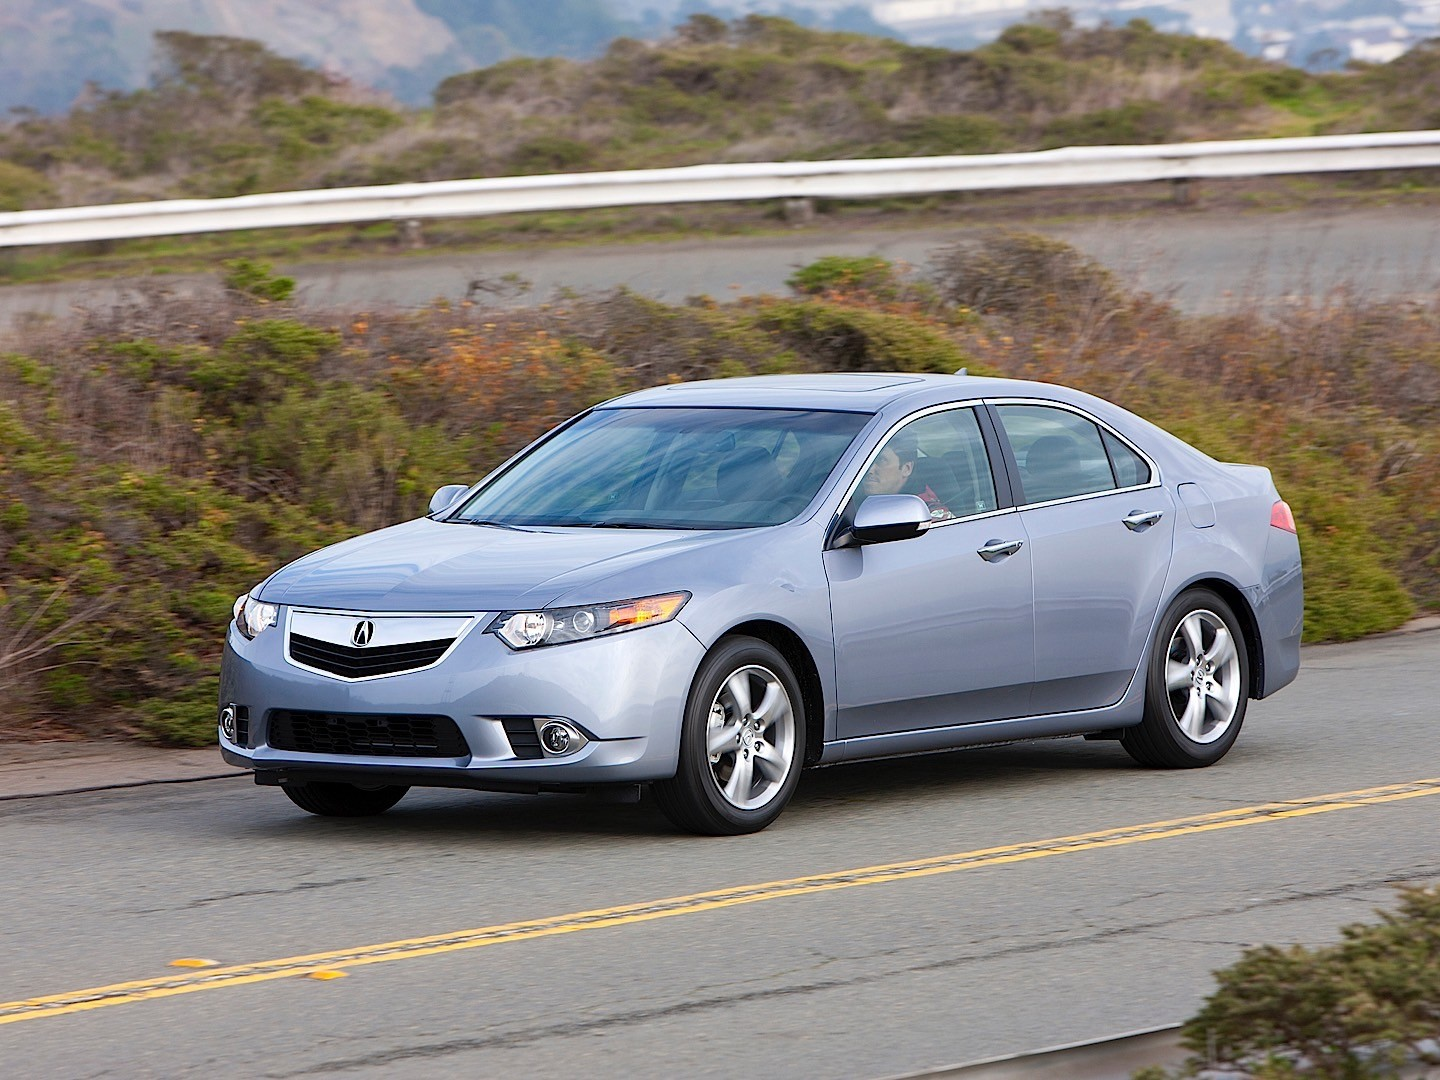 sale at used sedan conway acura automatic pkg tech detail for tsx